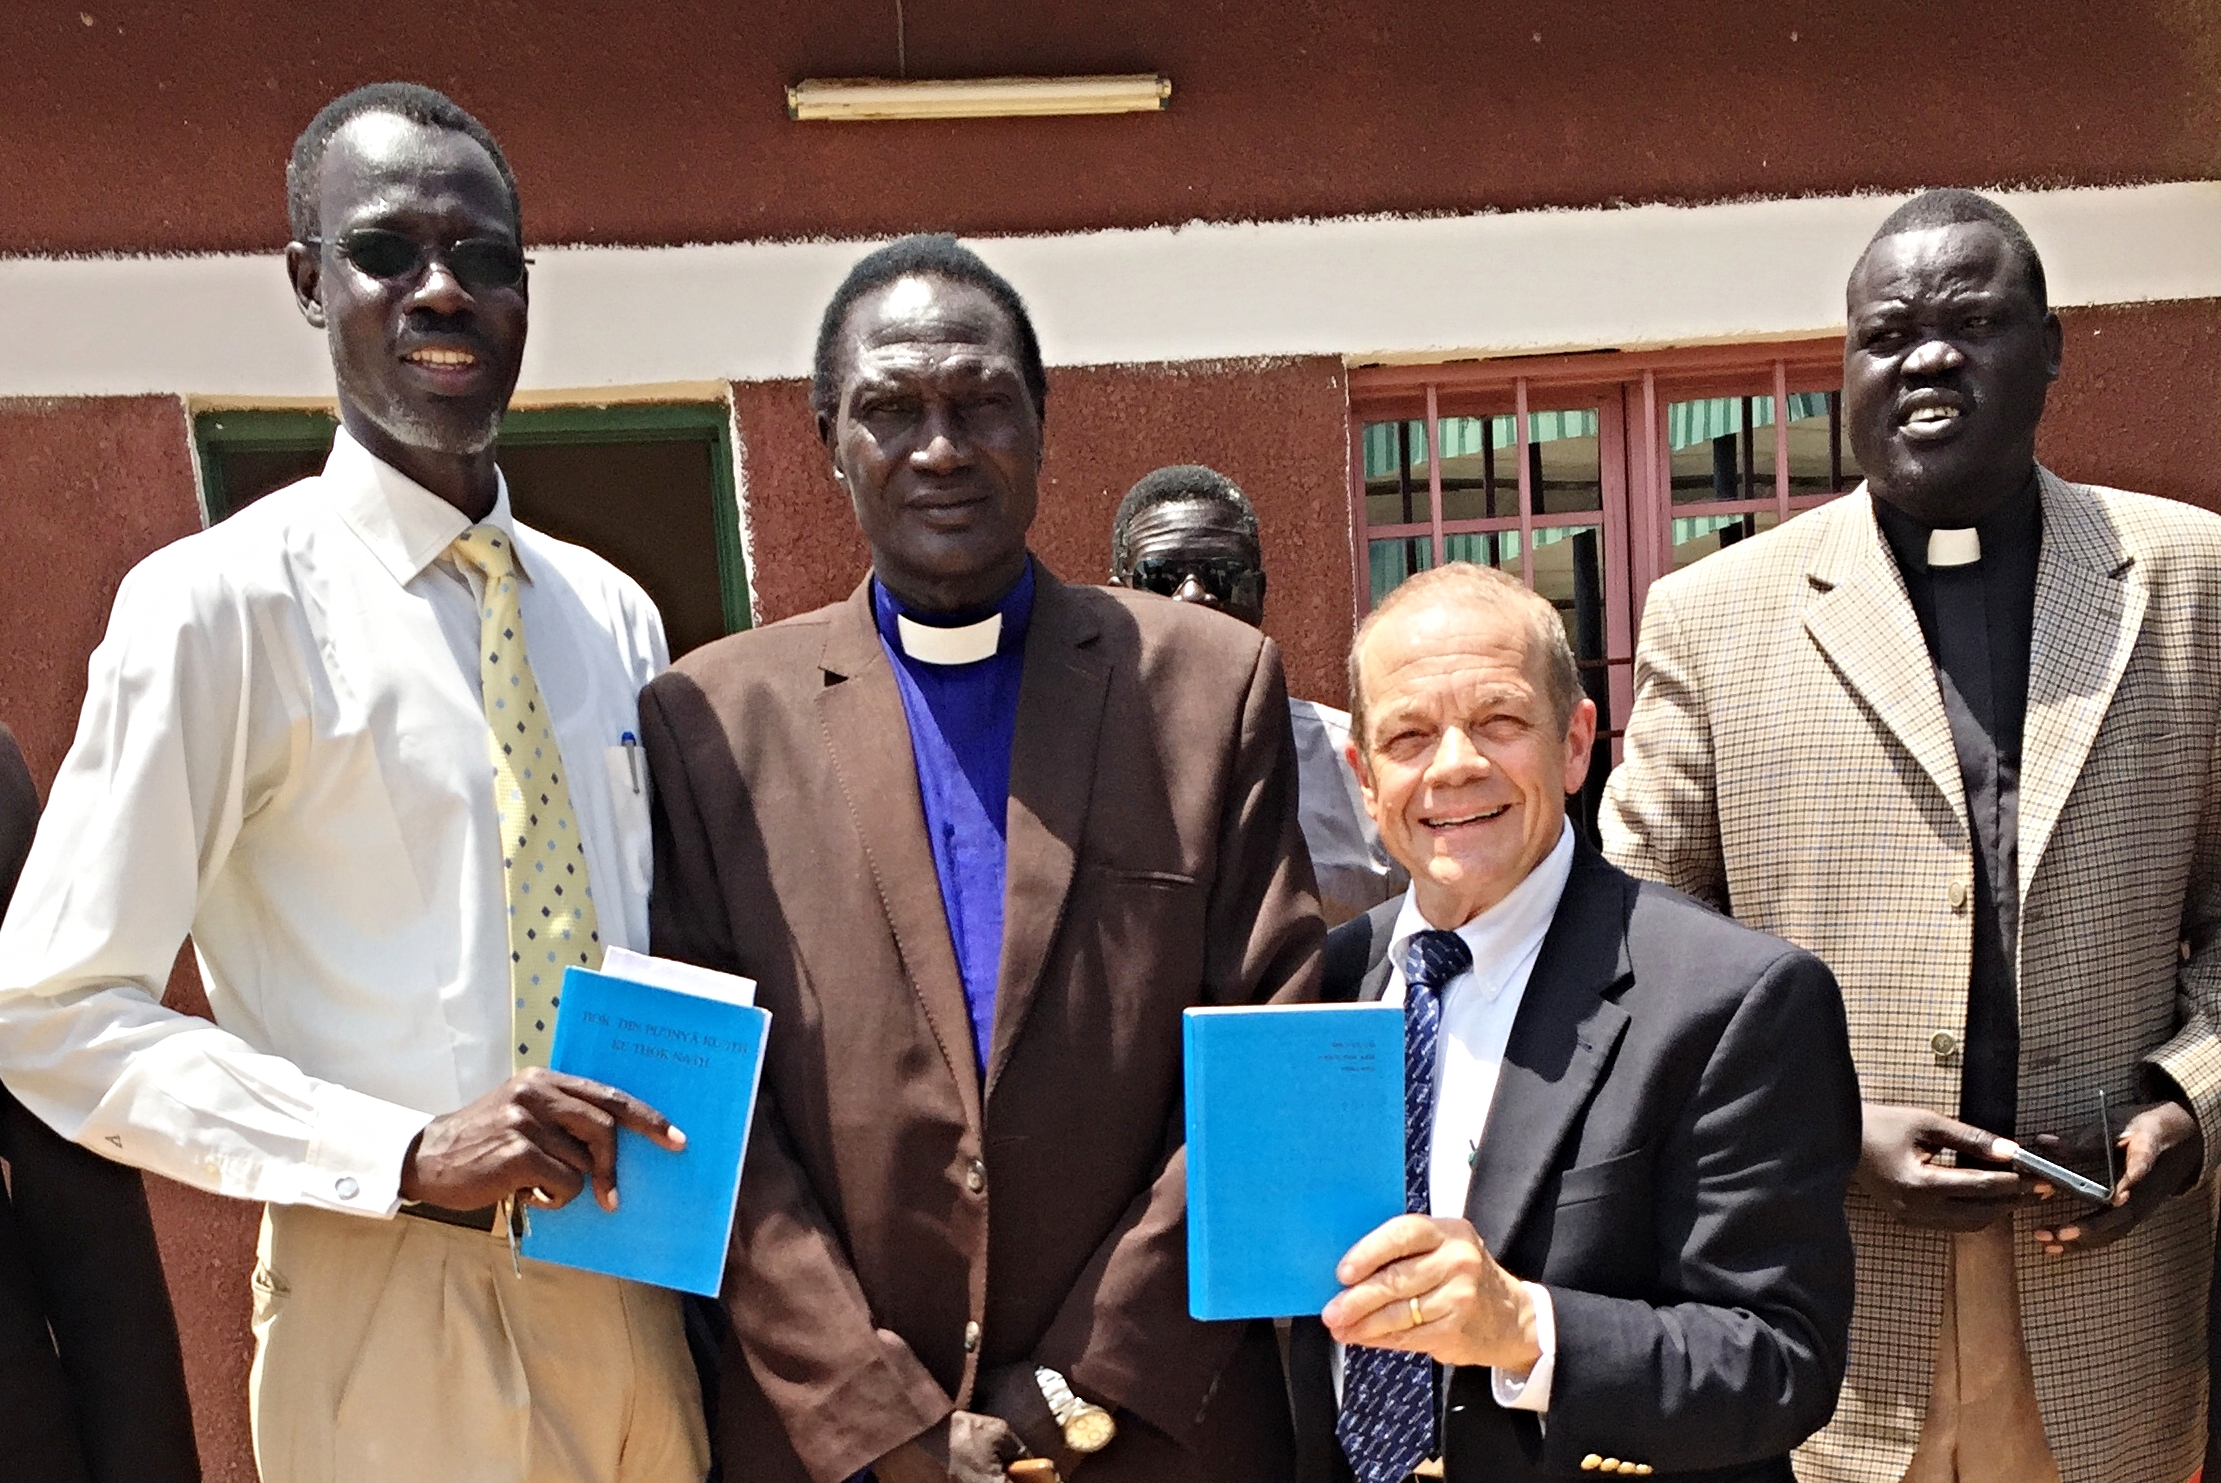 From left to right, The Rev. Tut Mai, Lecturer at Nile Theological College, Juba; the Rev. Paul Ruot Kor, senior pastor, Jebel Church; Jeff; the Rev. James Manyang, pastor overseeing Sudanese congregations in Egypt (and colleague of our Egyptian participants)